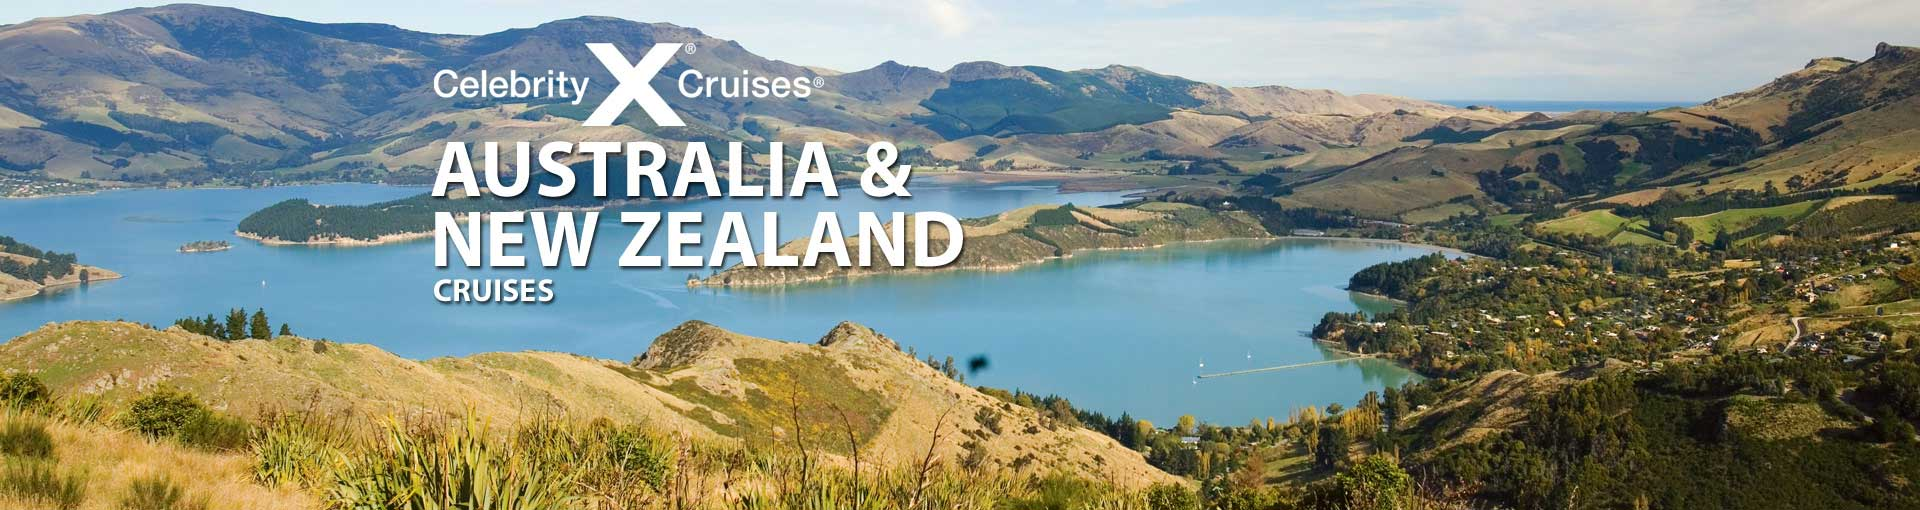 Celebrity Cruises Australia and New Zealand